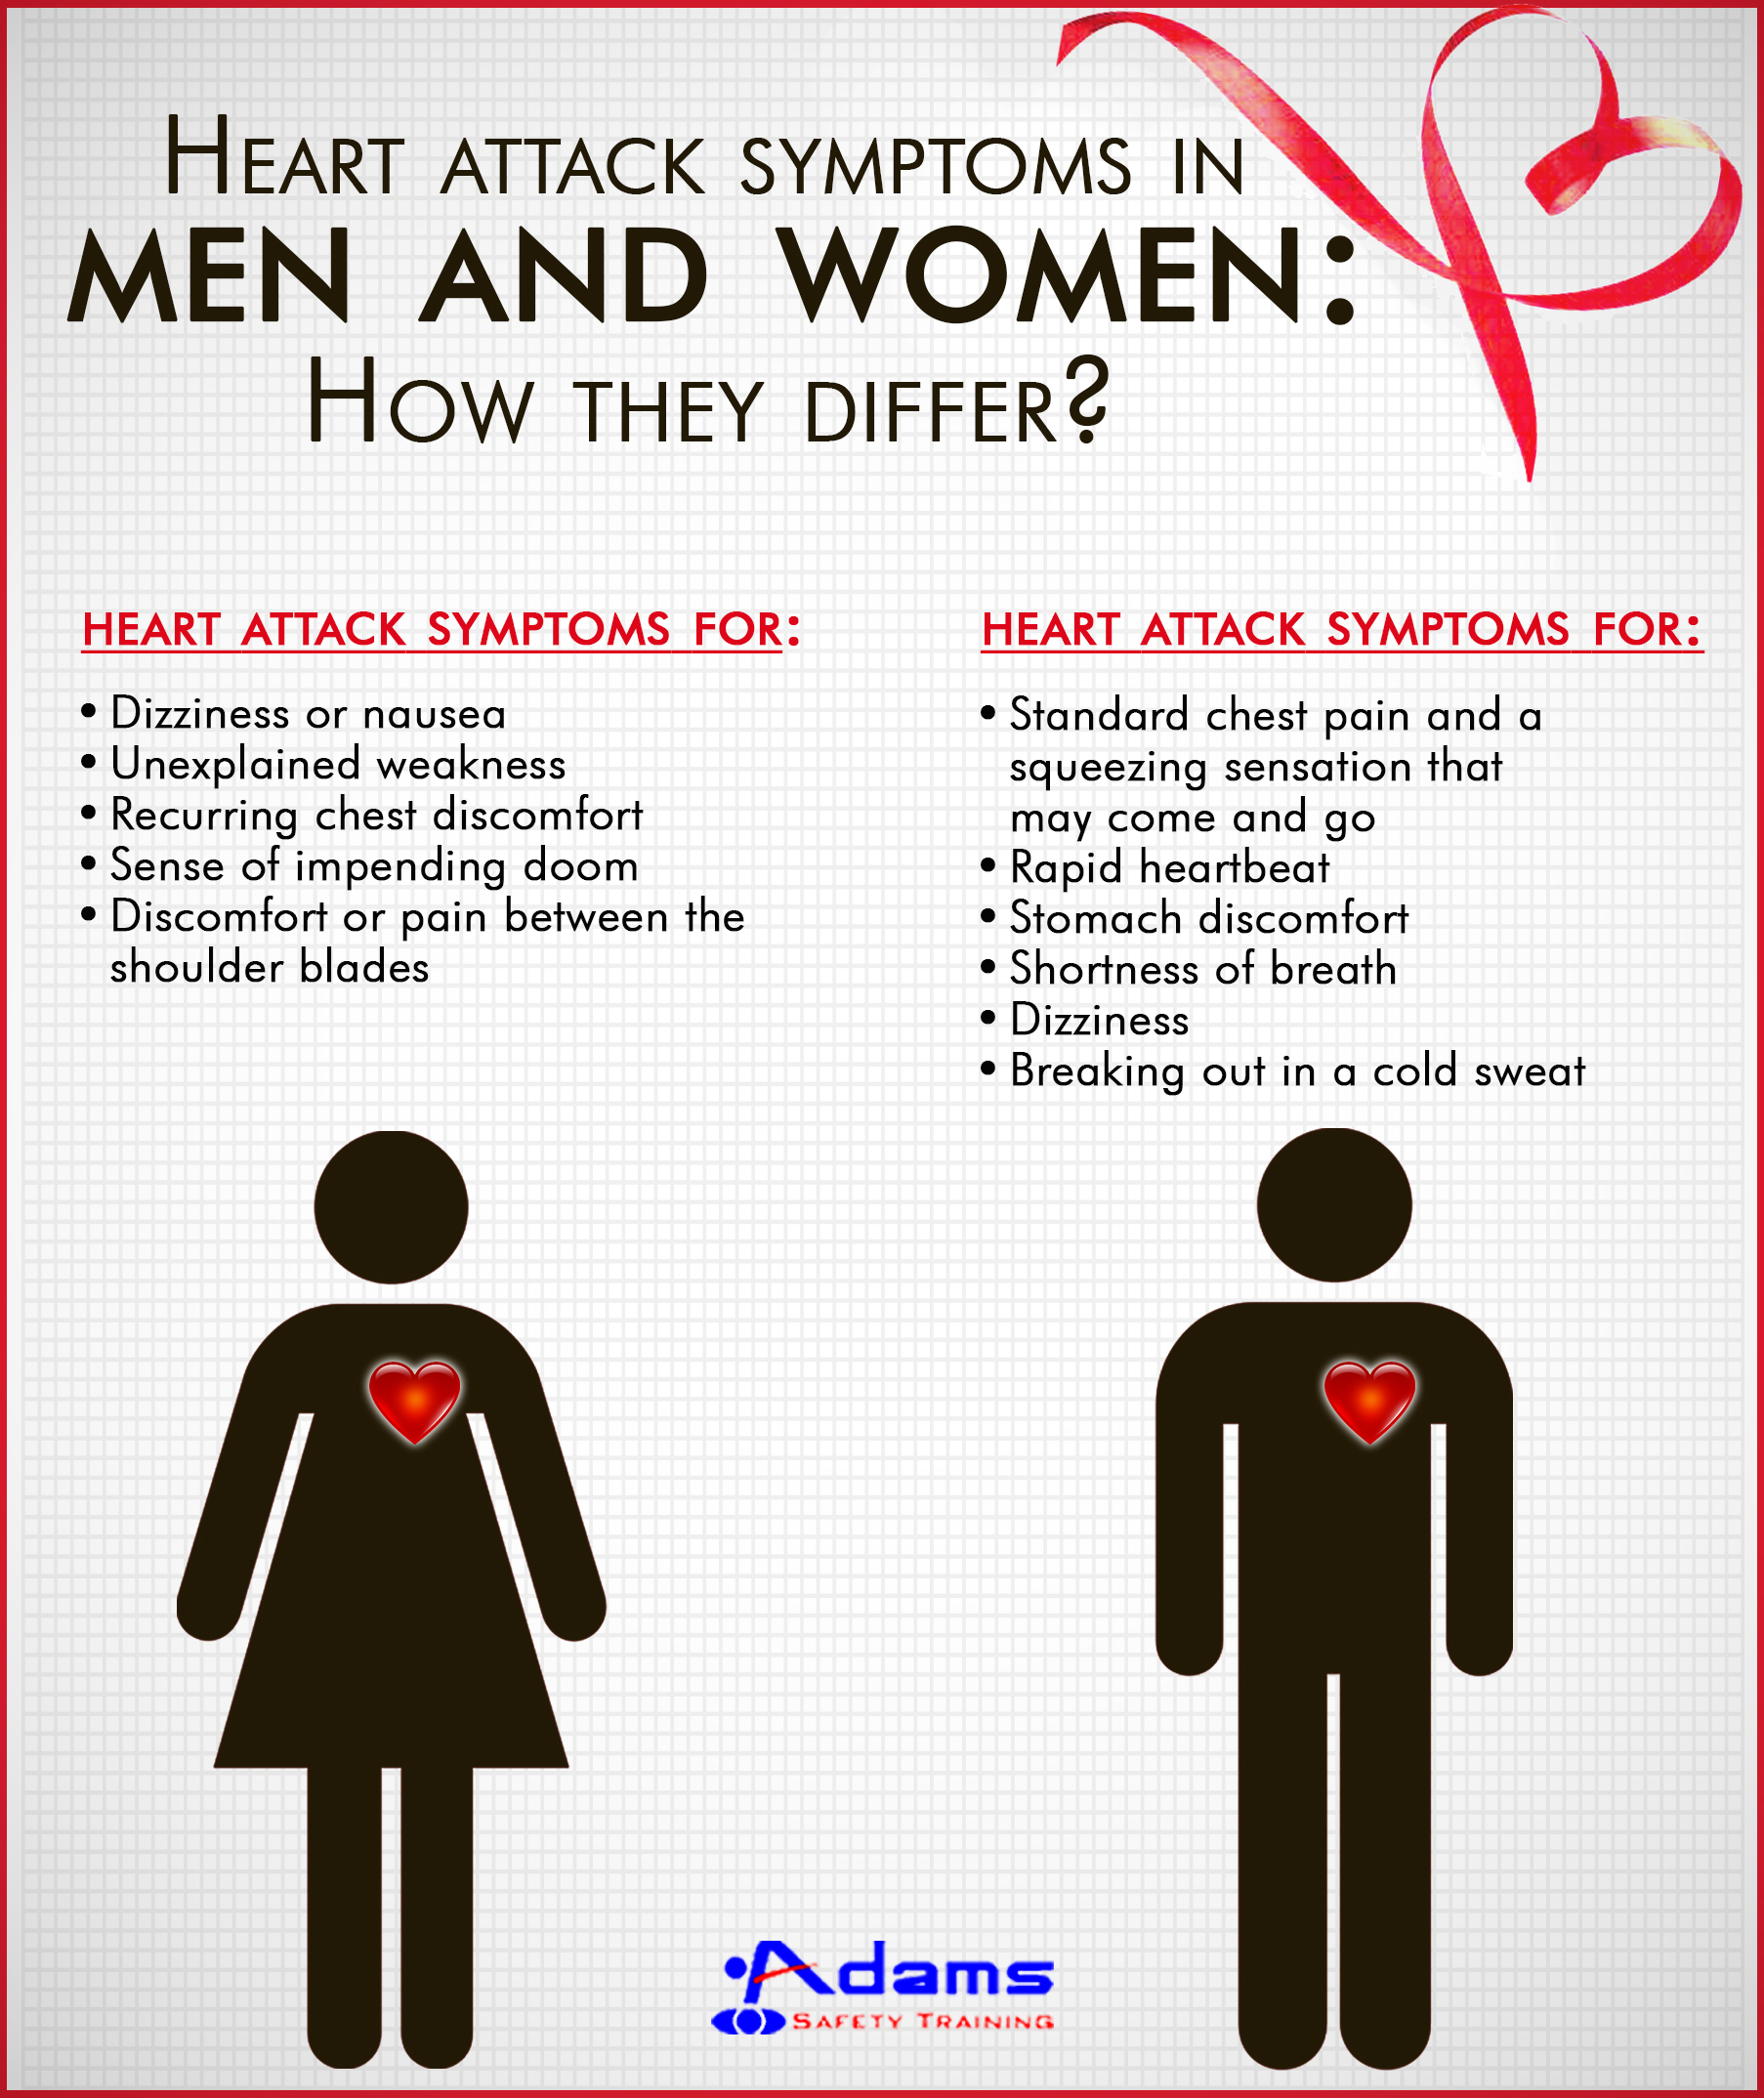 Heart attack symptoms in men and women: How they differ?